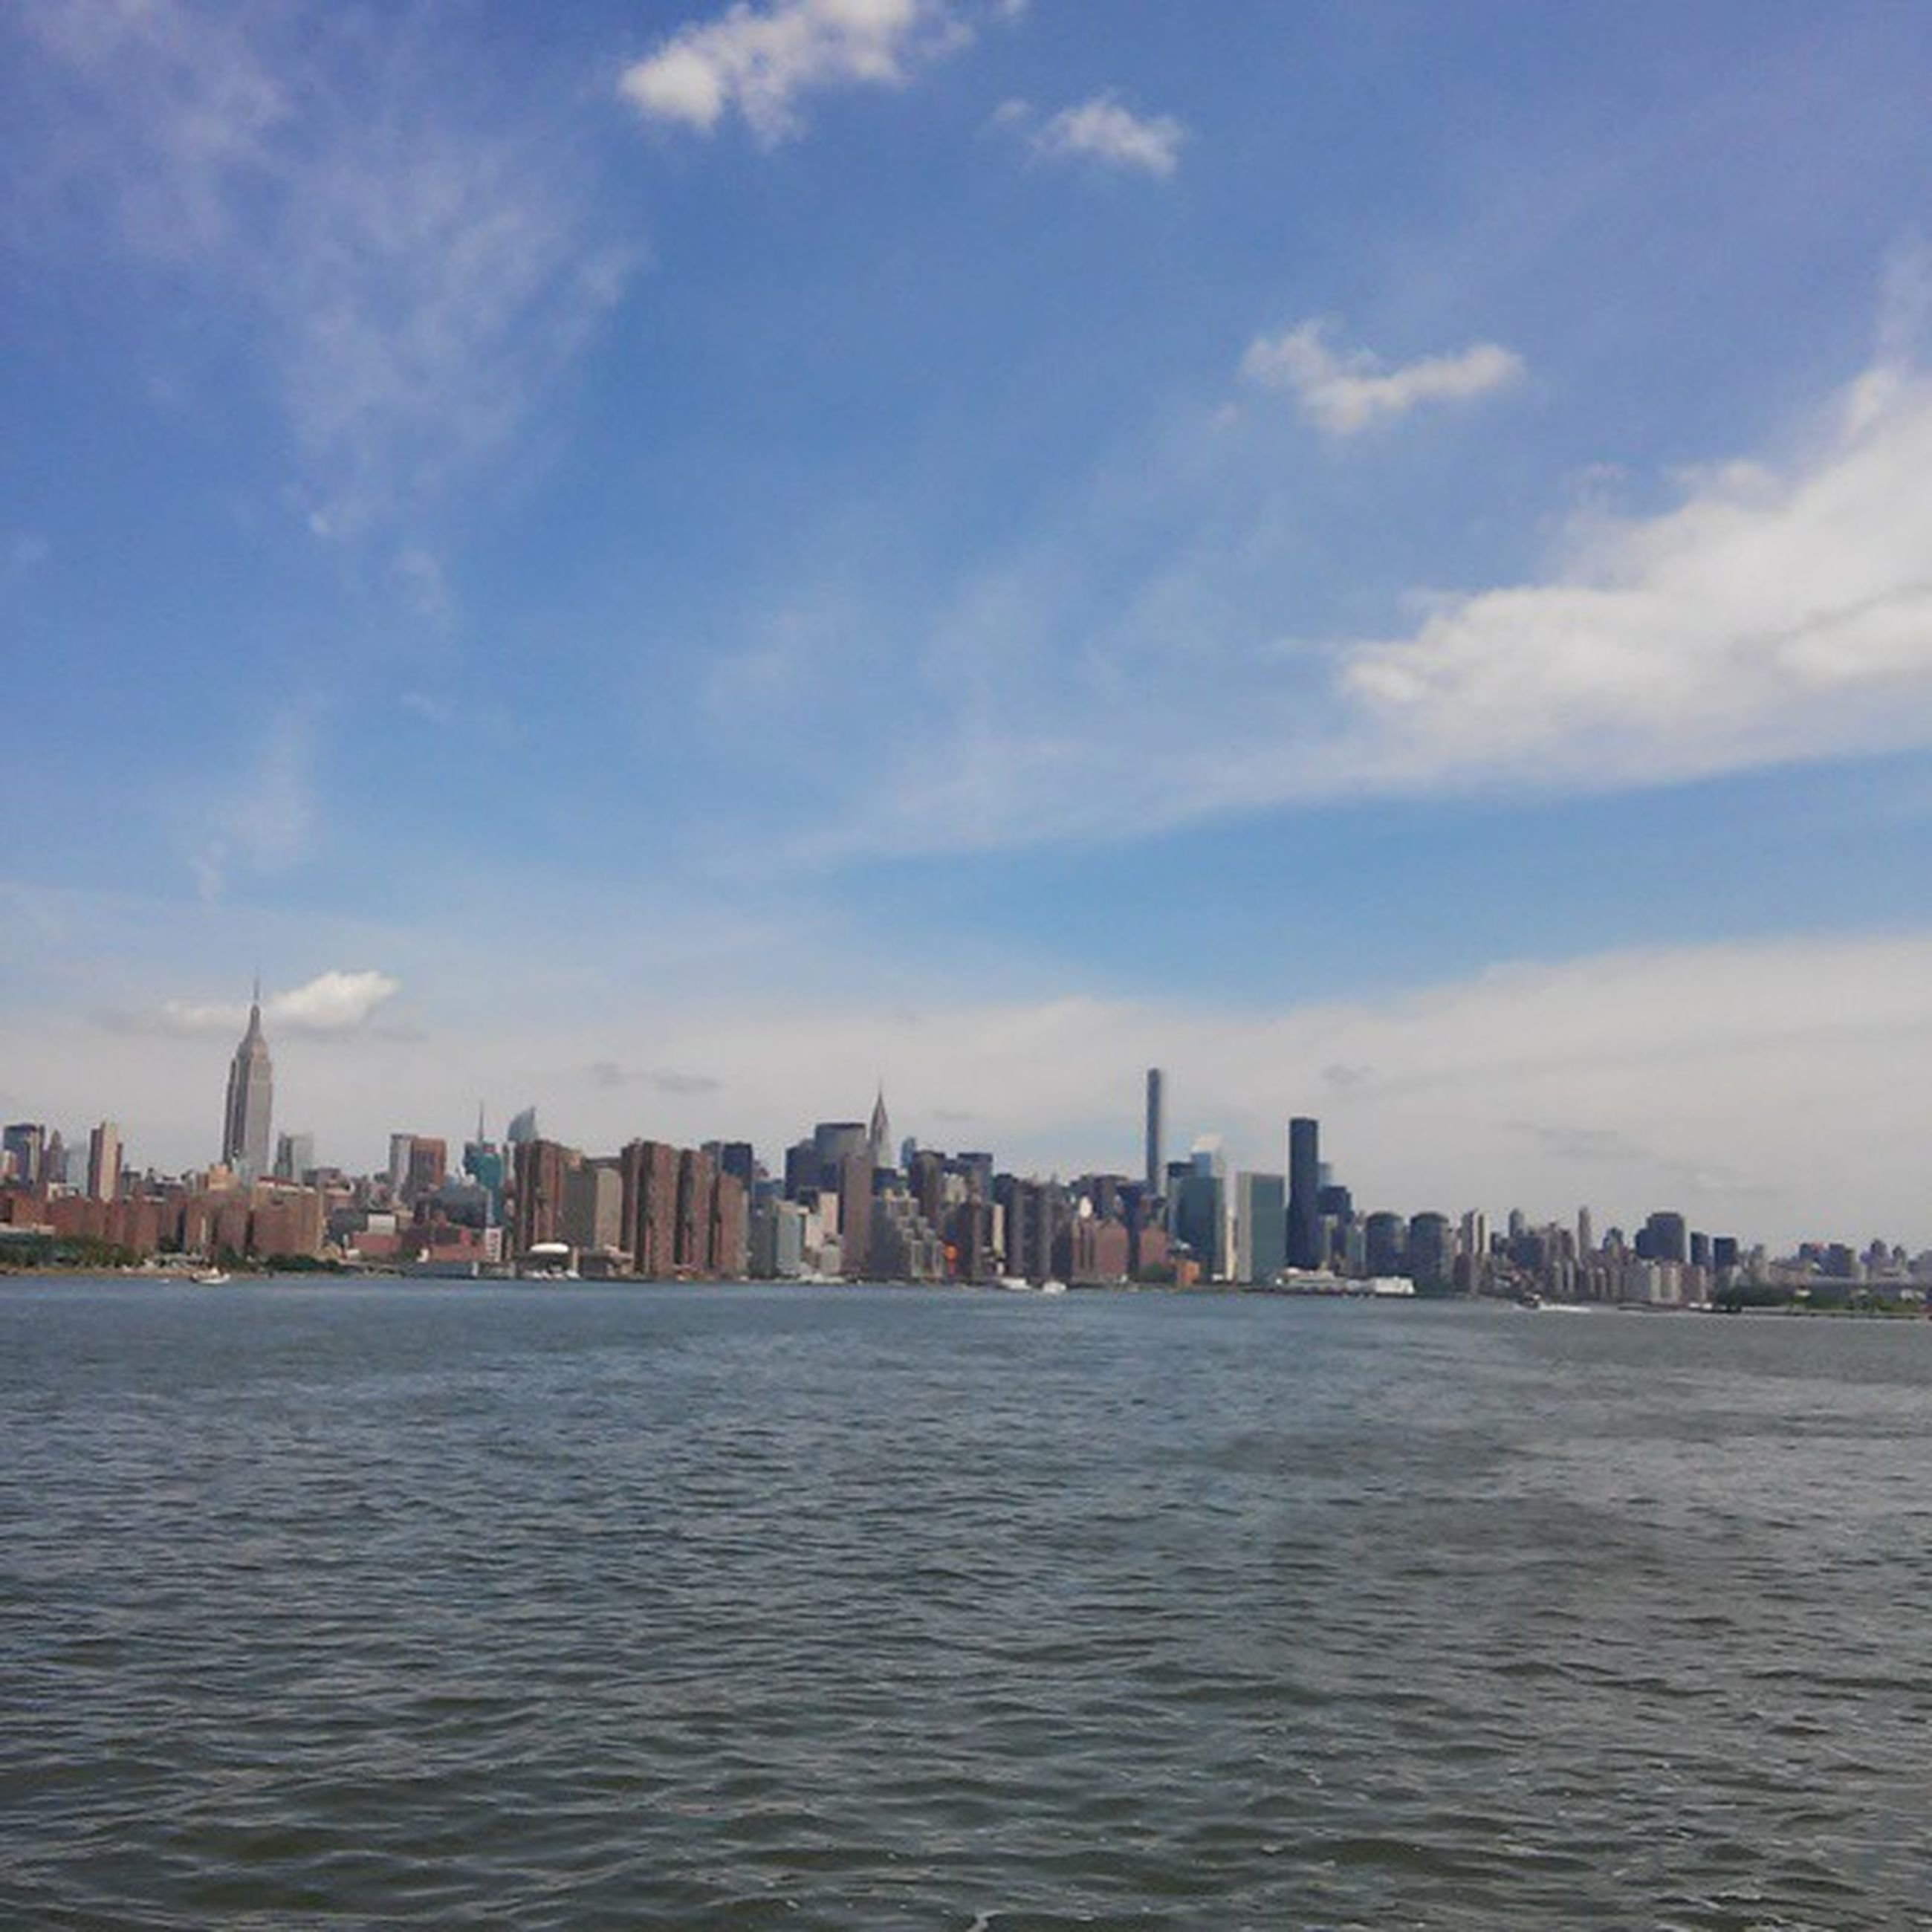 waterfront, water, building exterior, city, architecture, built structure, cityscape, sky, sea, skyscraper, urban skyline, river, blue, cloud, skyline, cloud - sky, rippled, tower, tall - high, office building